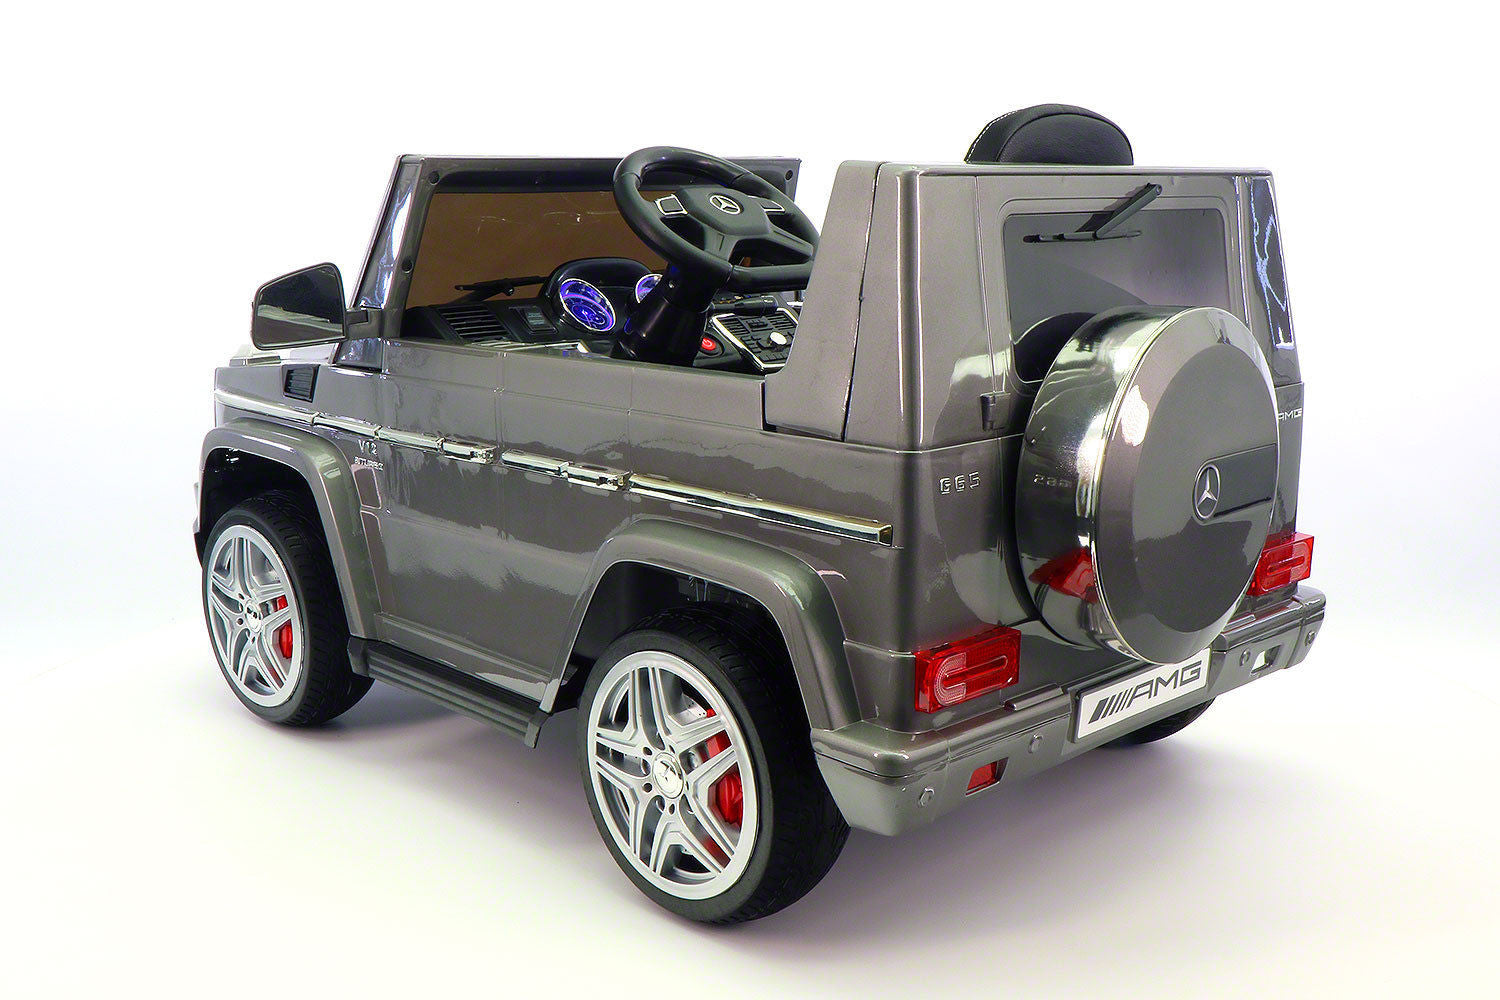 Mercedes benz g65 amg 12v battery powered ride on toy car for Mercedes benz ride on